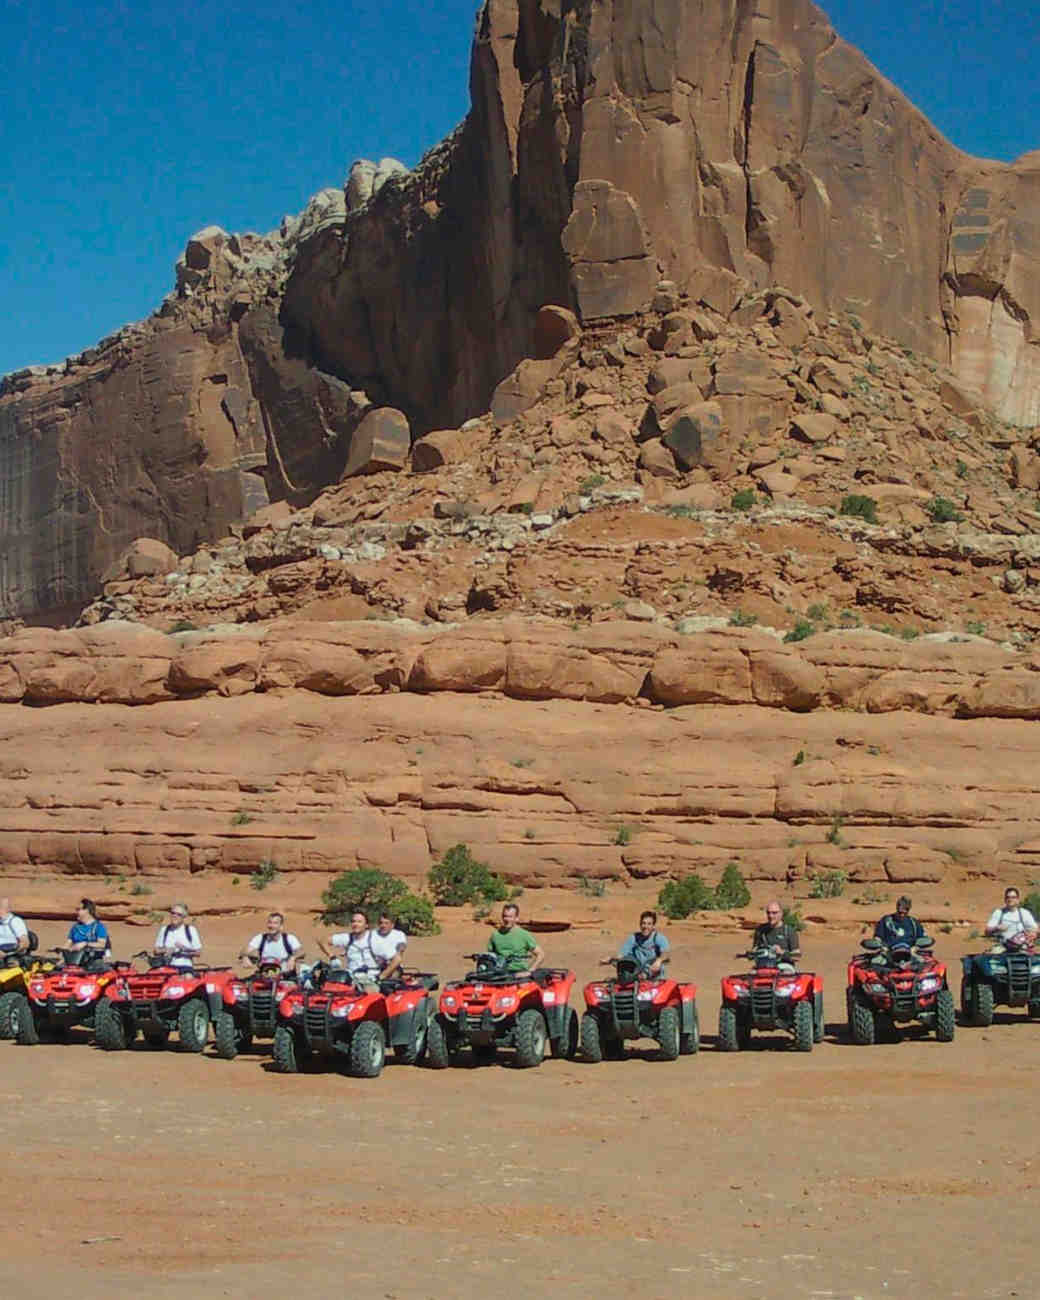 bachelor-party-trip-moab-mountain-four-wheeling-0315.jpg